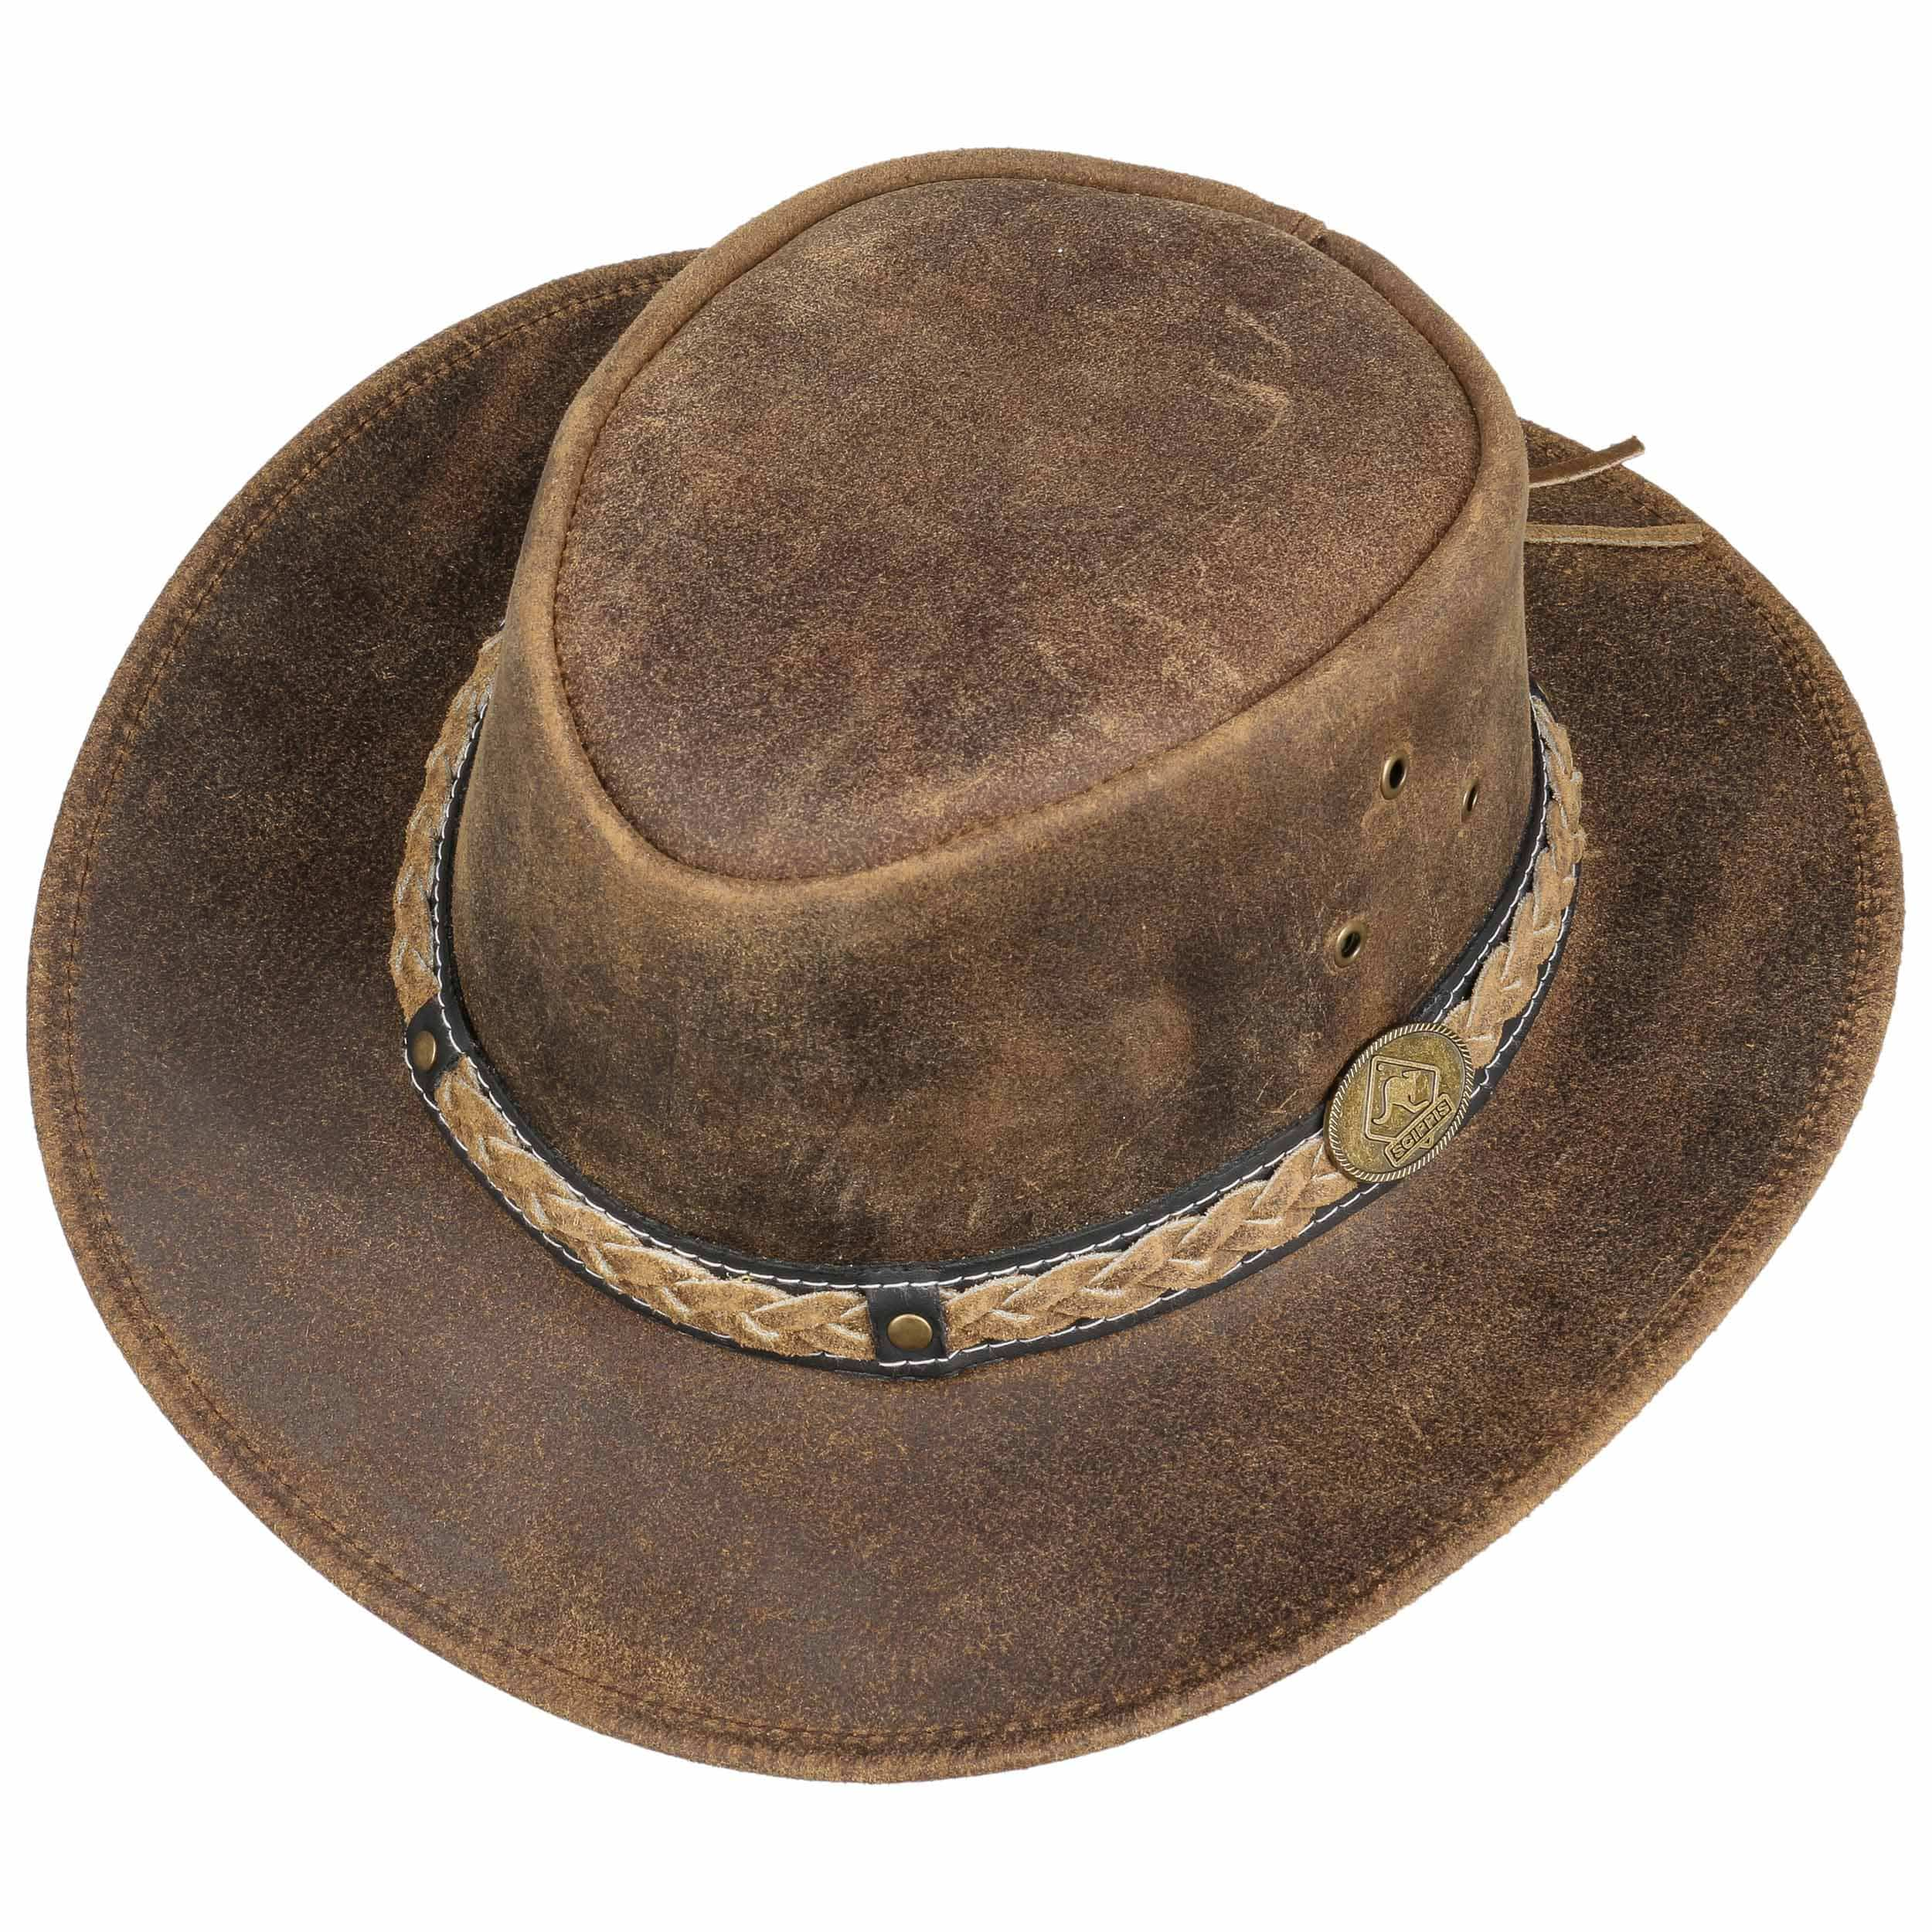 Scippis Darwin Leather hat